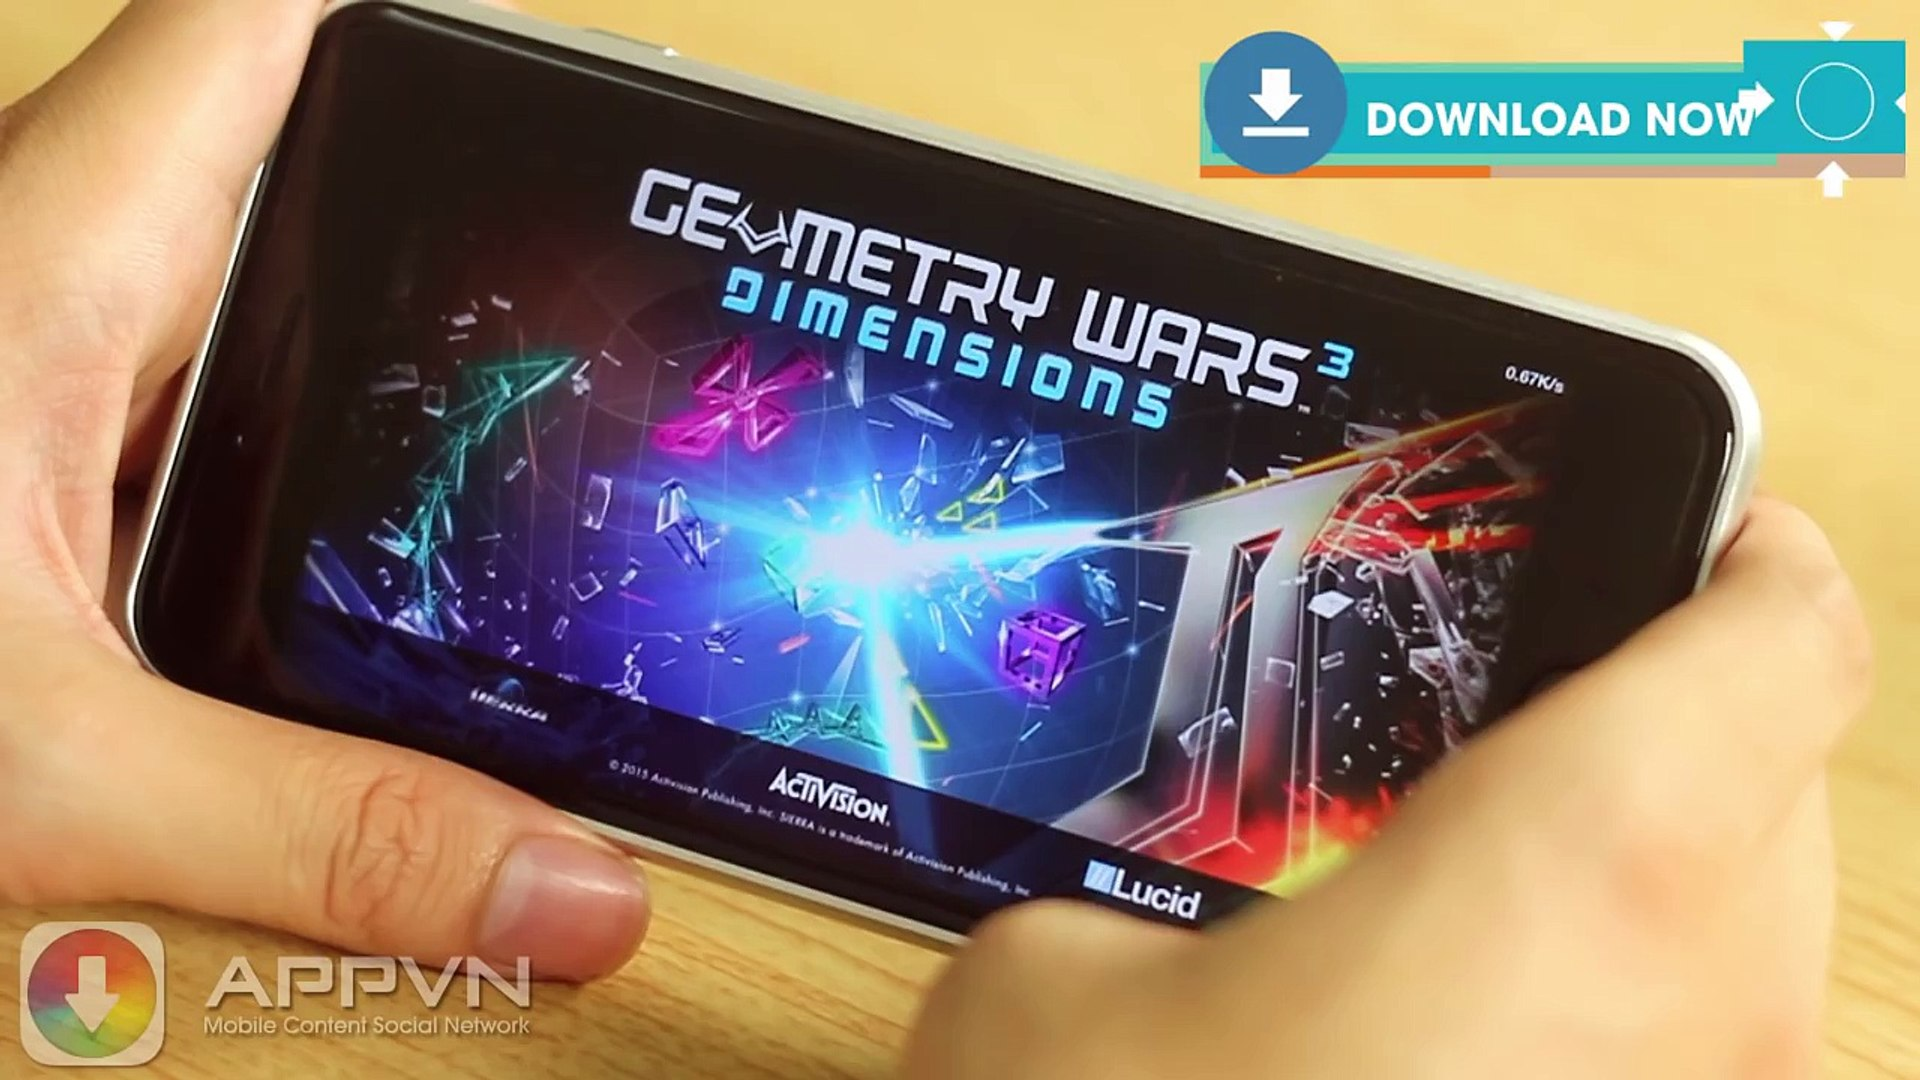 [Game IOS] Geometry Wars 3 - Chiến tranh thế giới 3 - AppStore.Vn